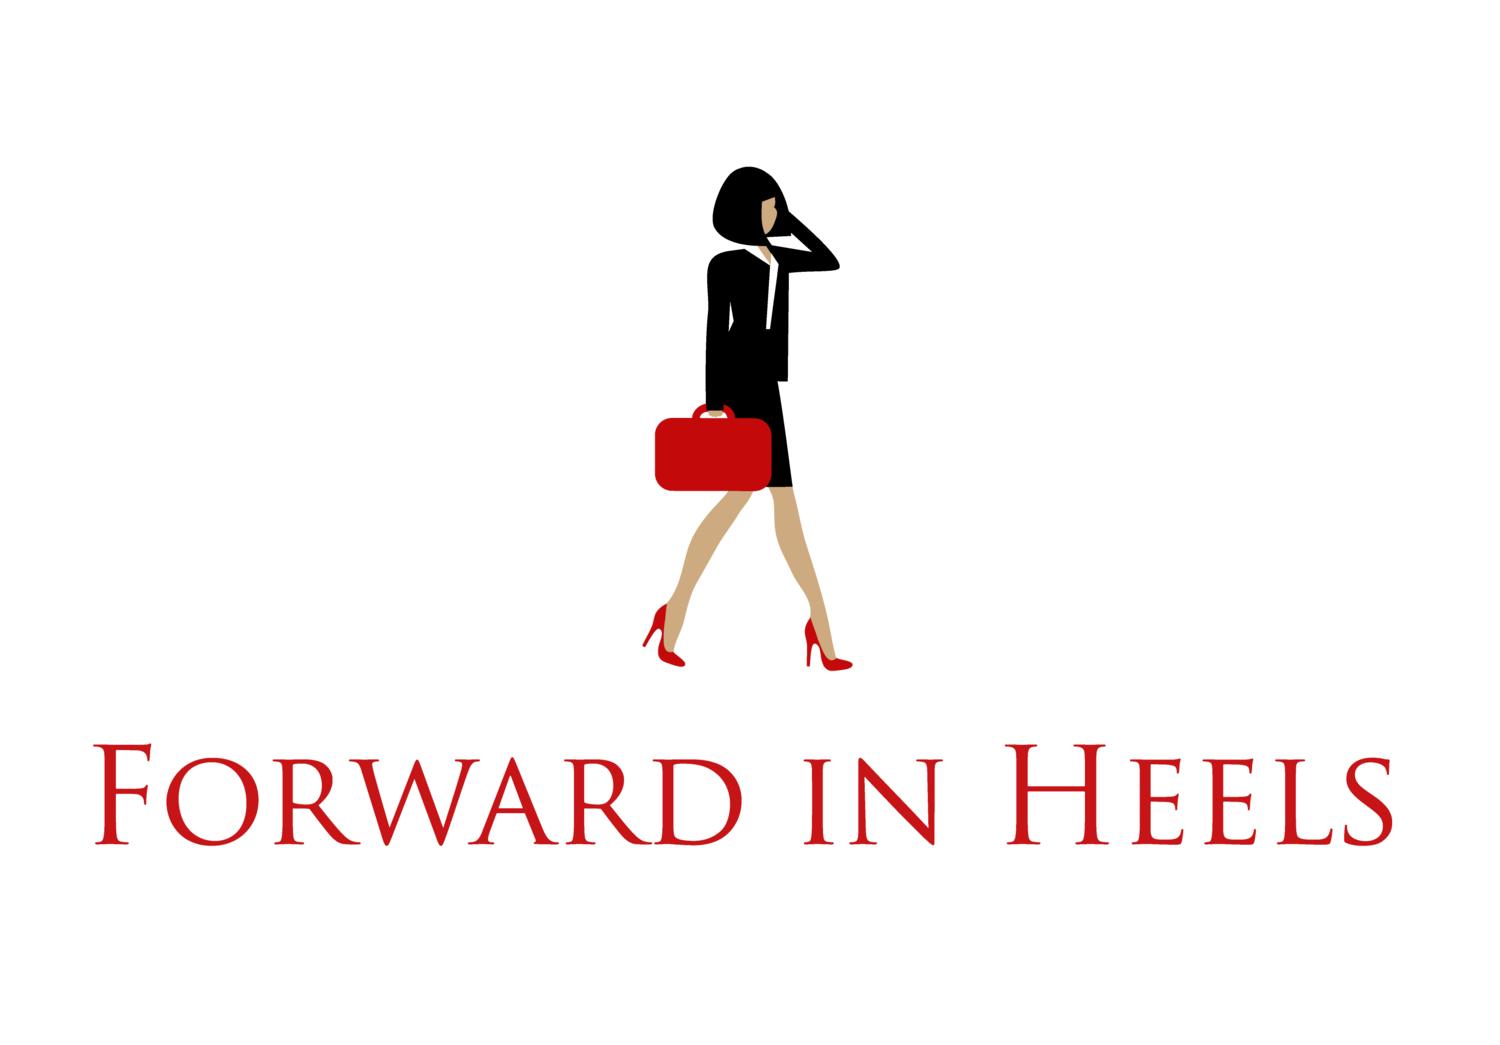 Forward in Heels